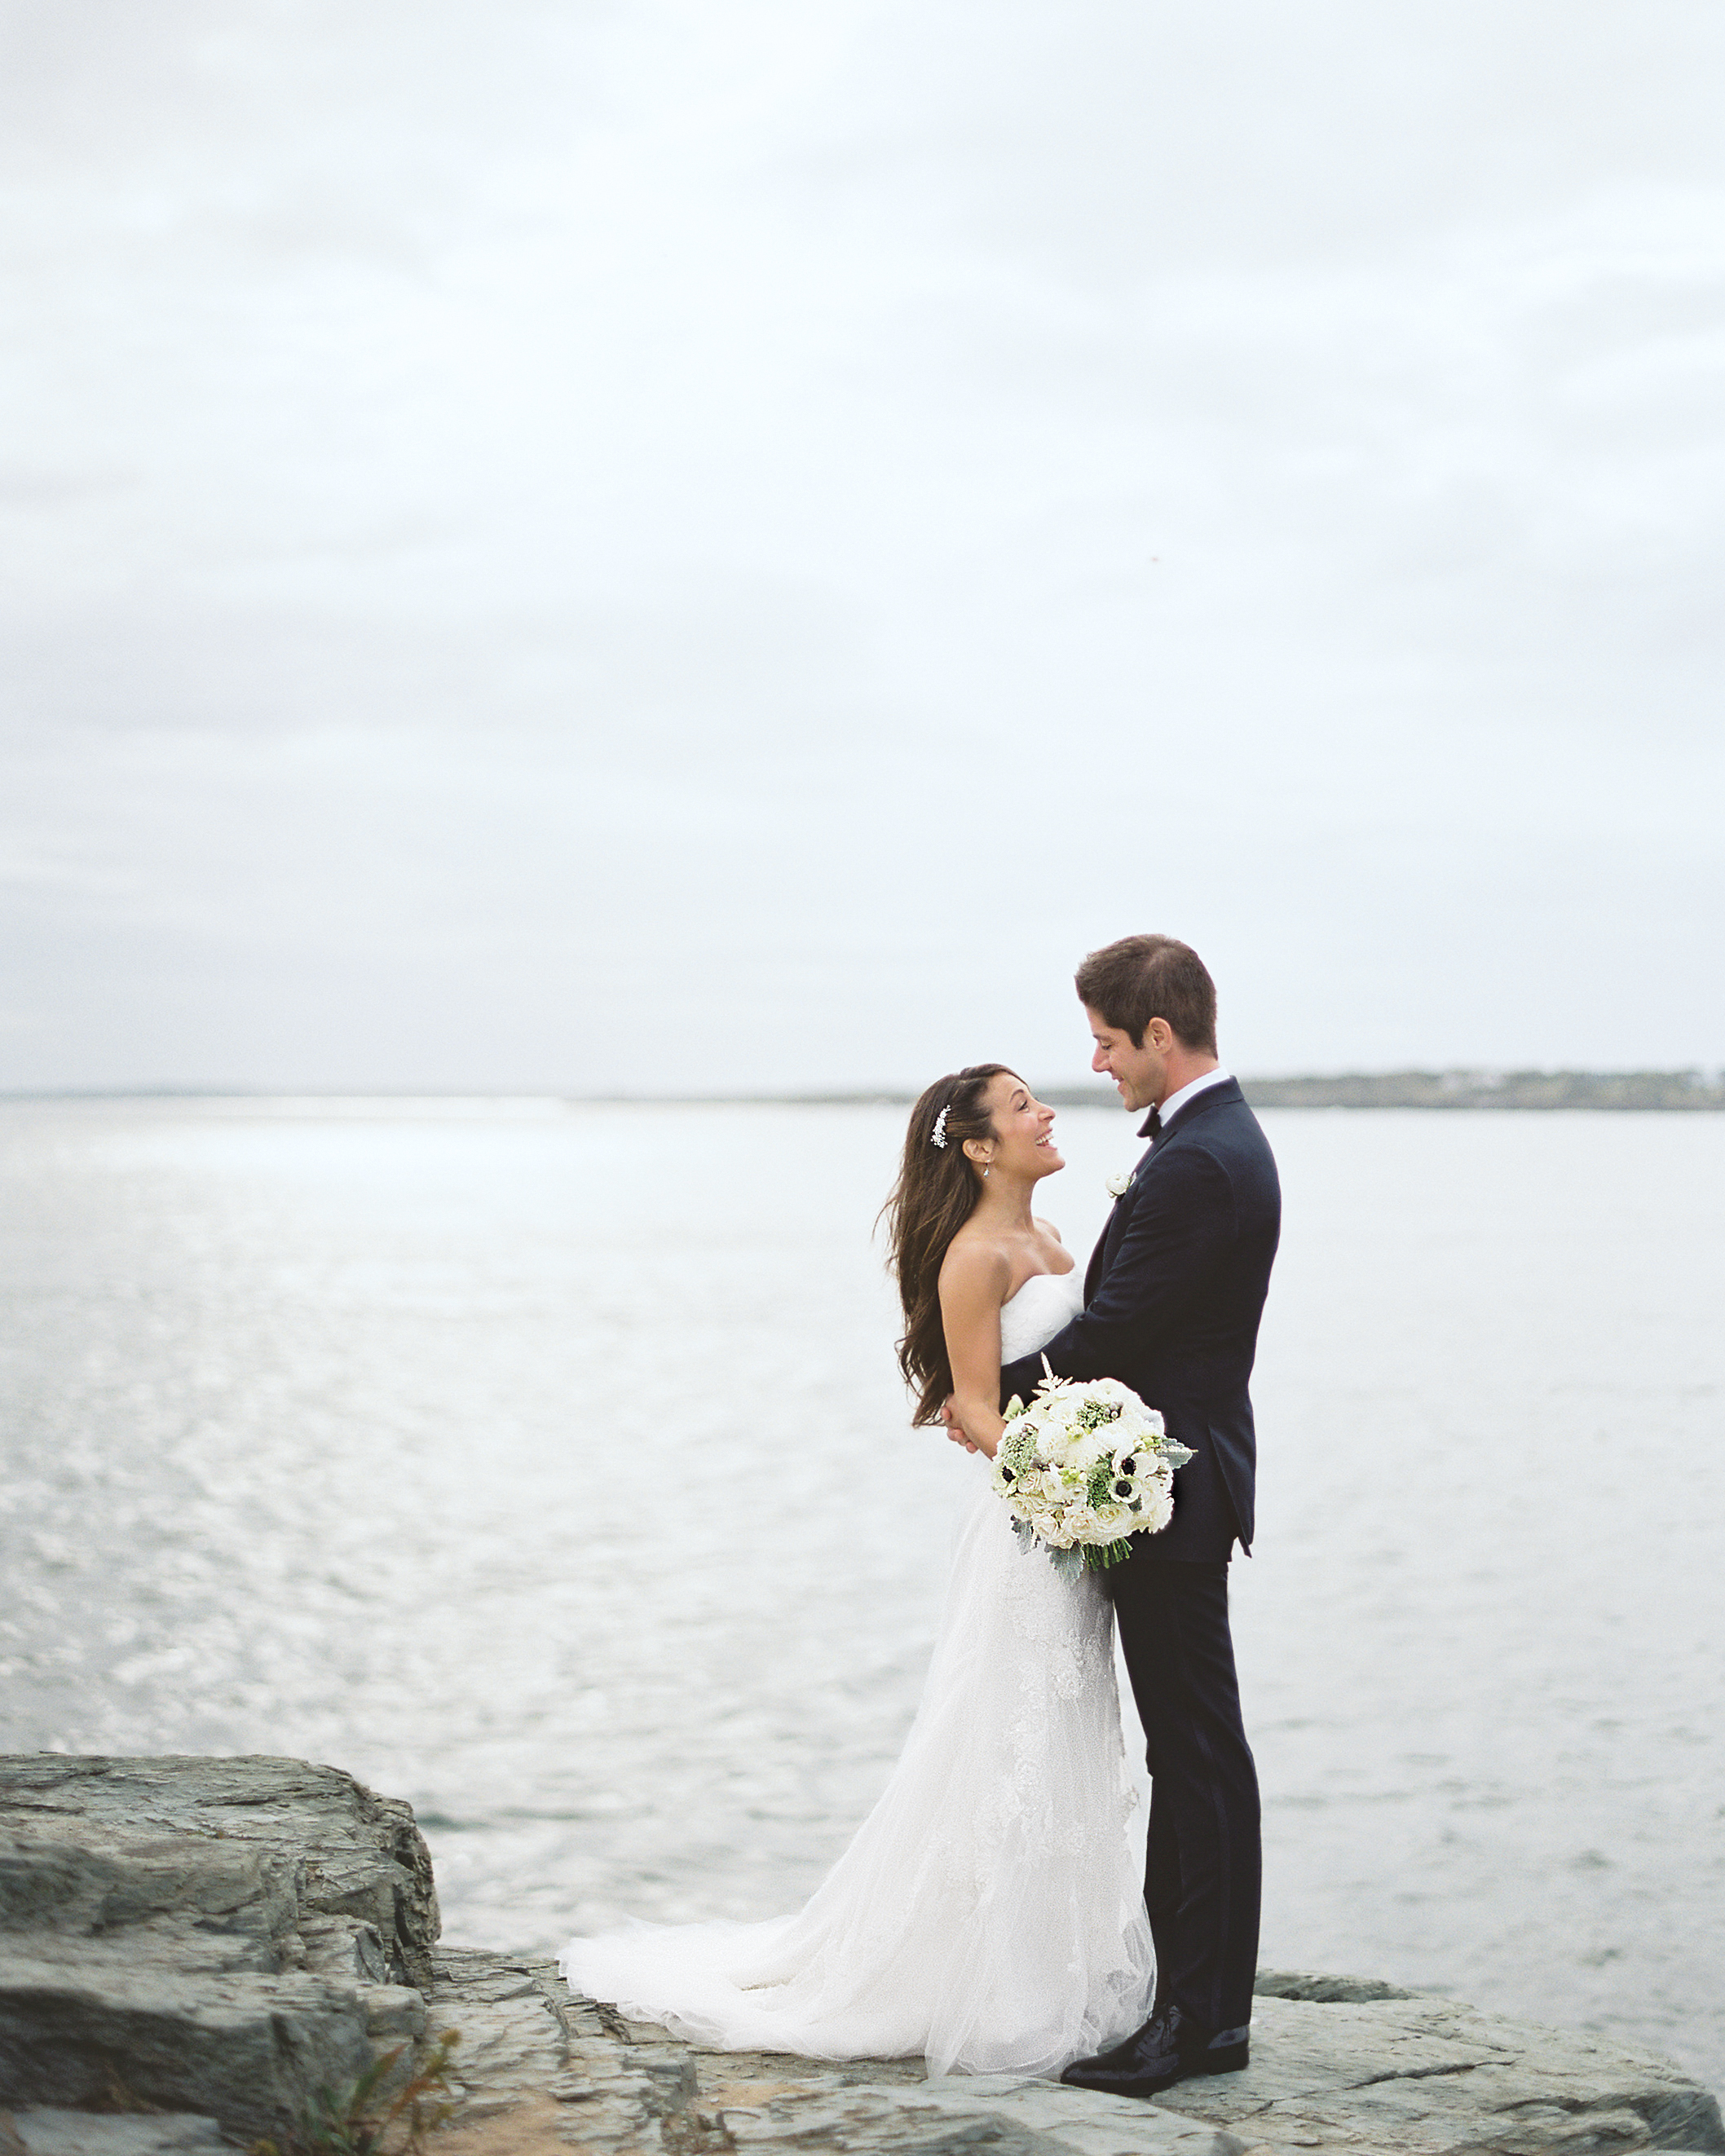 A Classic and Stylish Nautical Wedding in Newport, Rhode Island